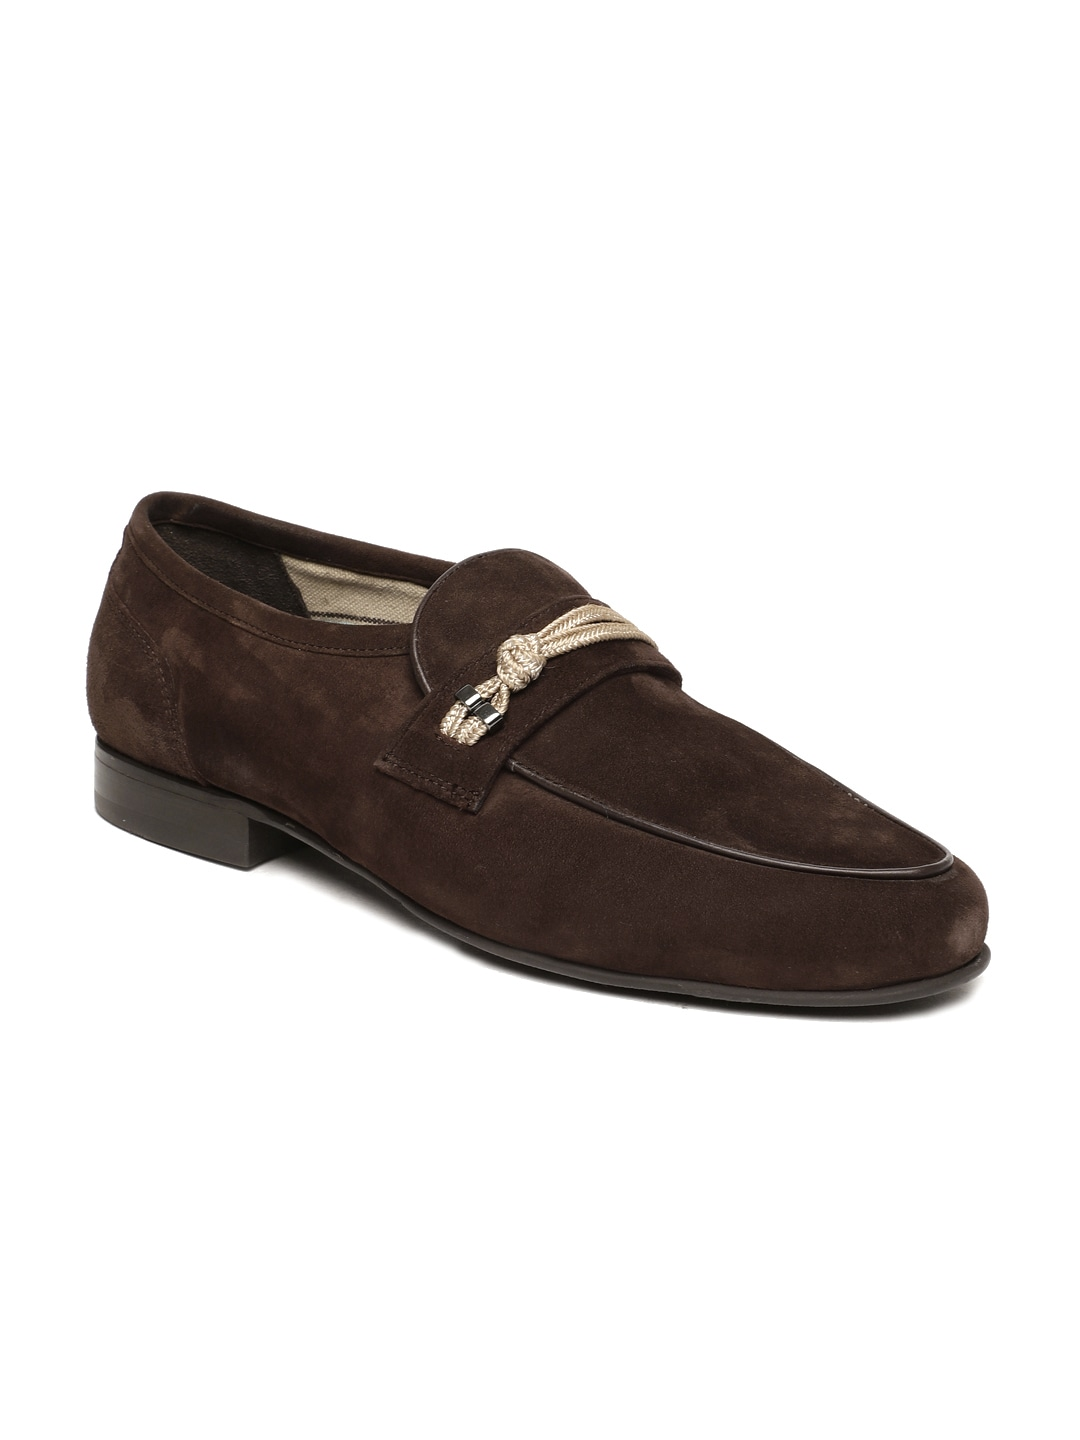 23b71a8b41588 Loafers For Men & Women - Buy Loafers For Men & Women online in India